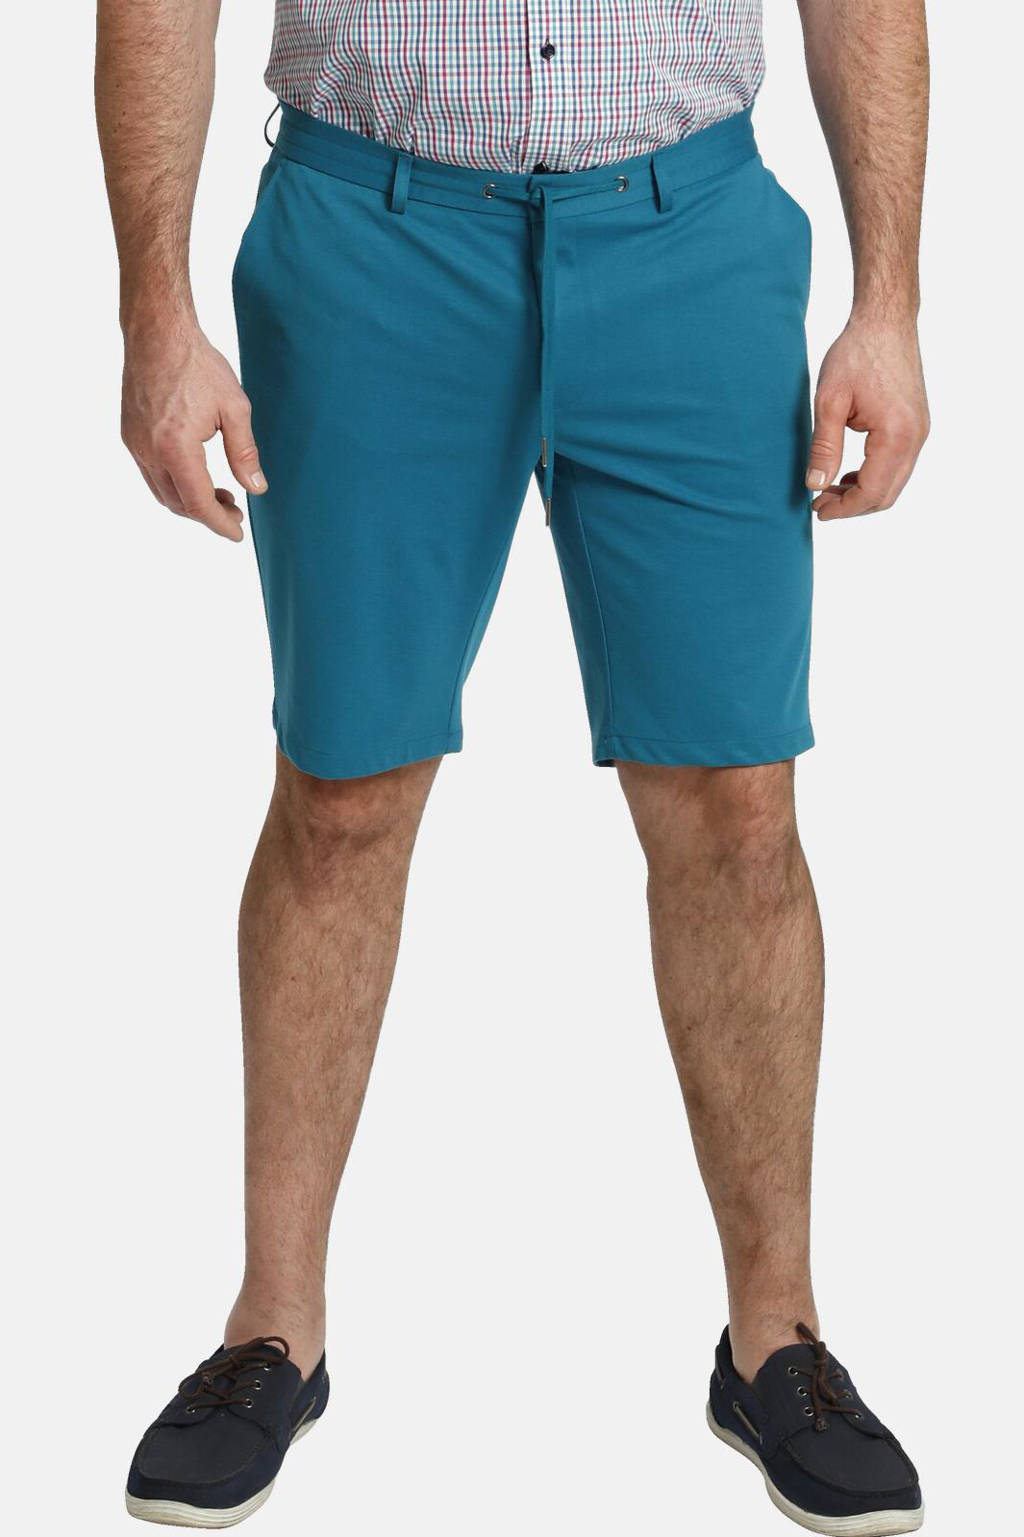 Charles Colby loose fit chino short BARON FERDINAND Plus Size groen, Groen